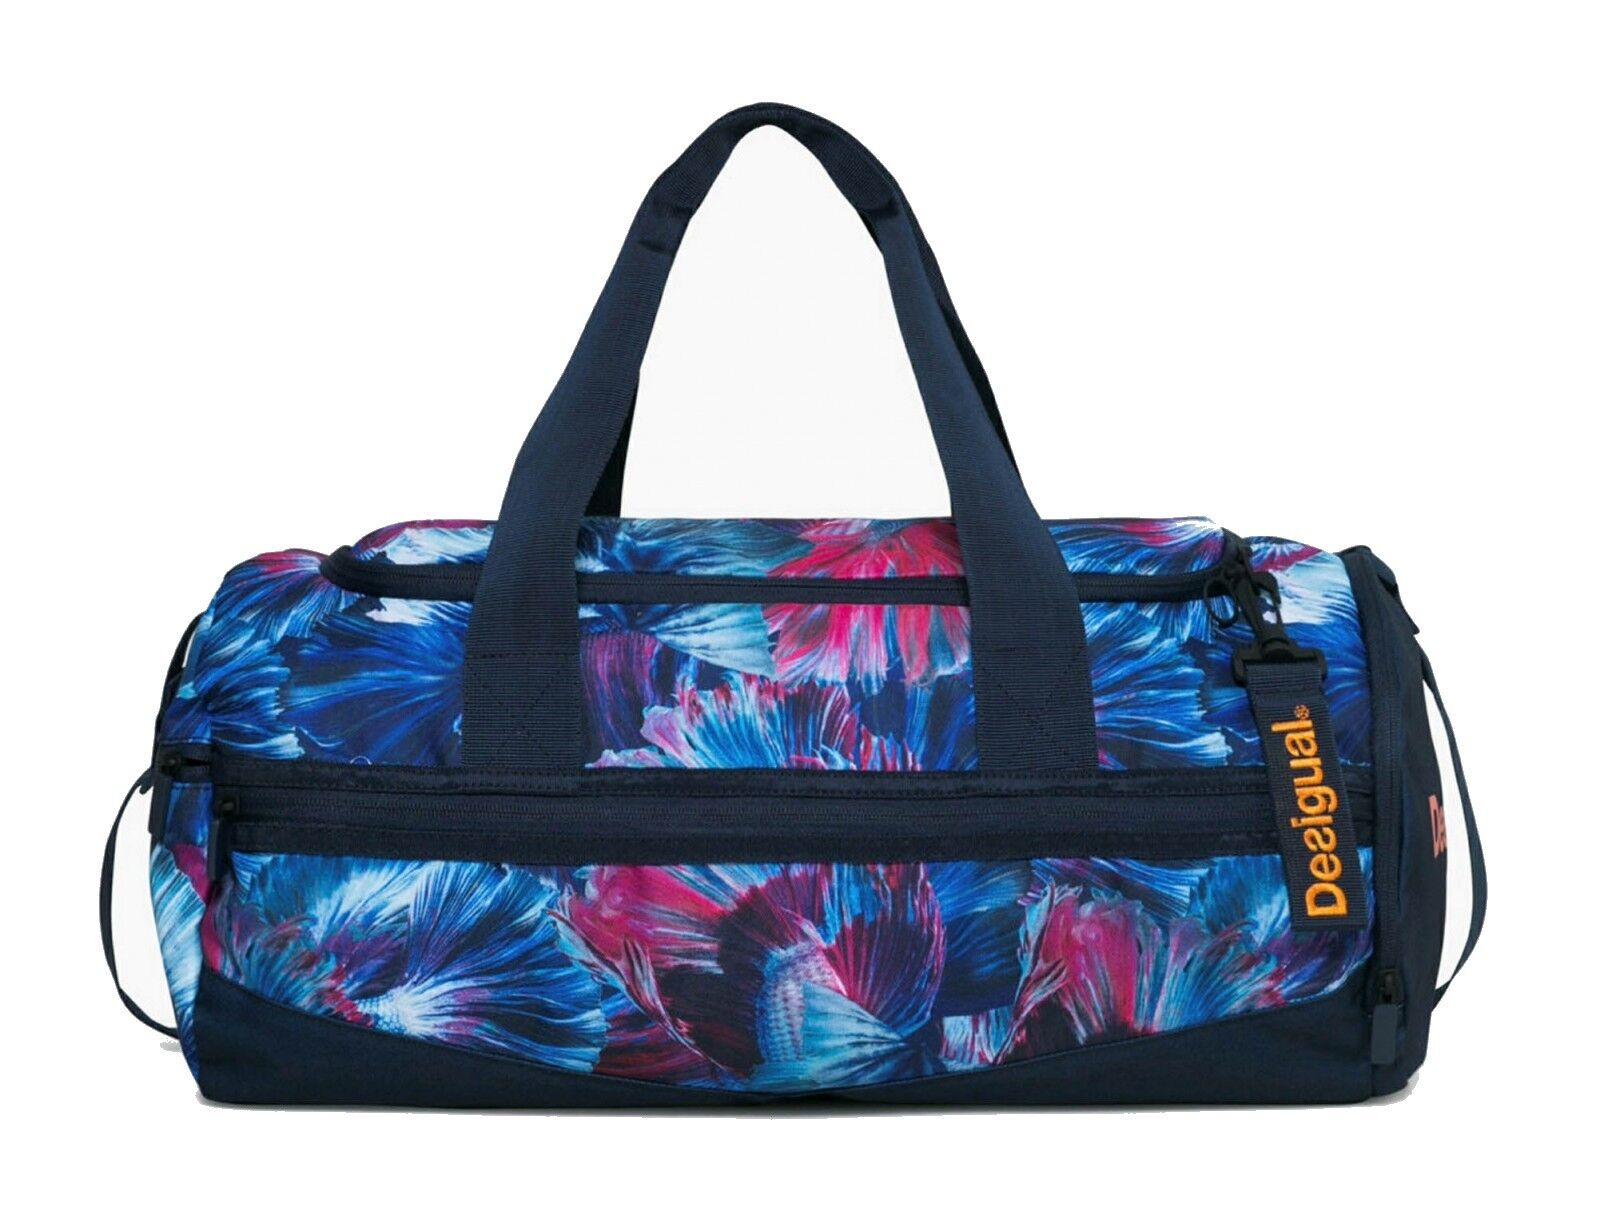 Desigual Sports Bag Atlantis Tube Shoulder